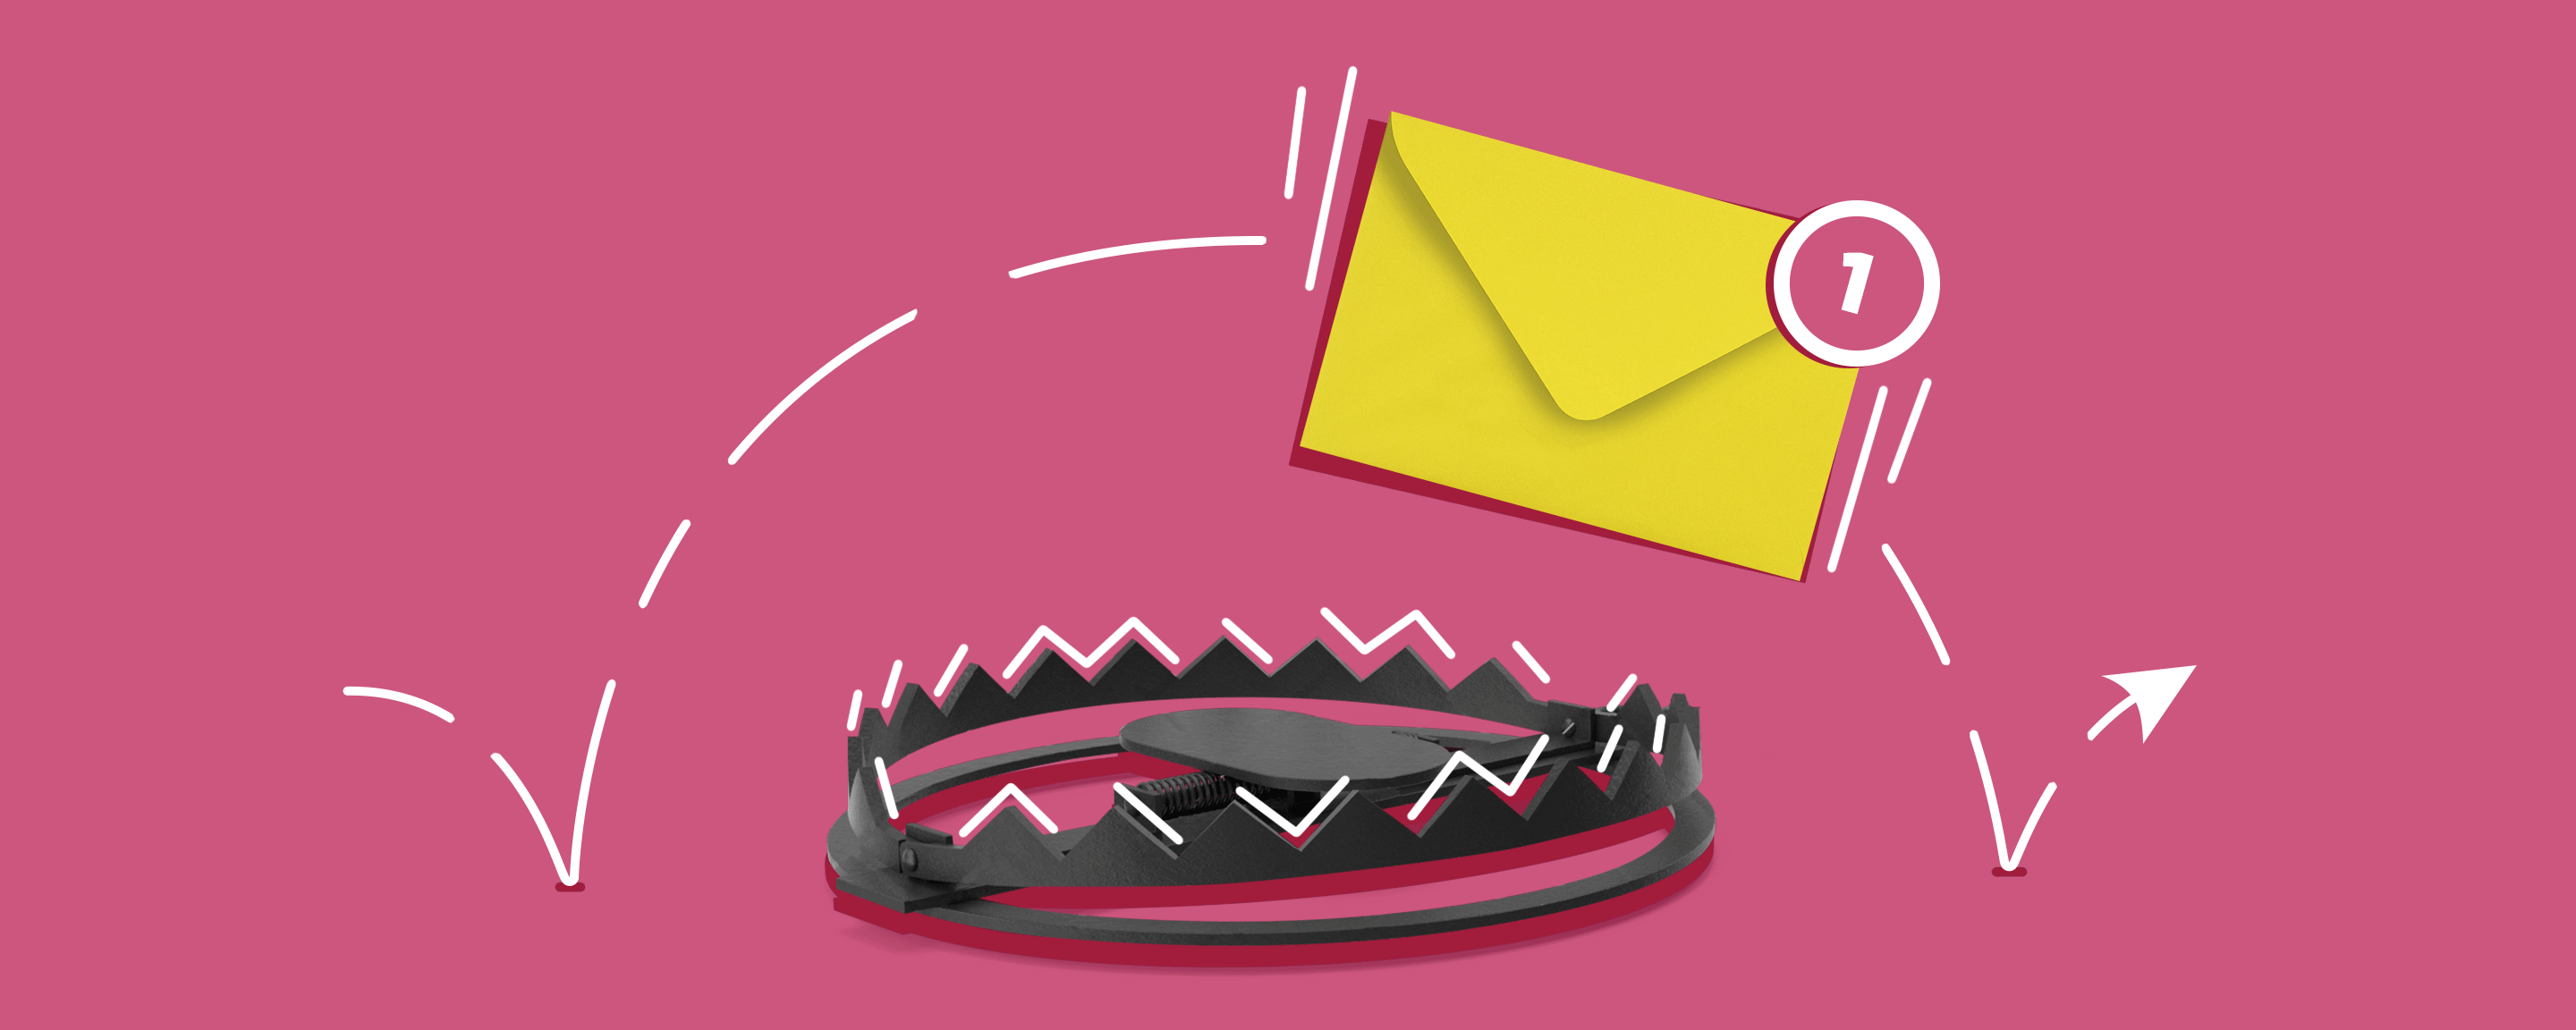 5-Email-Fails-You-Need-to-Avoid